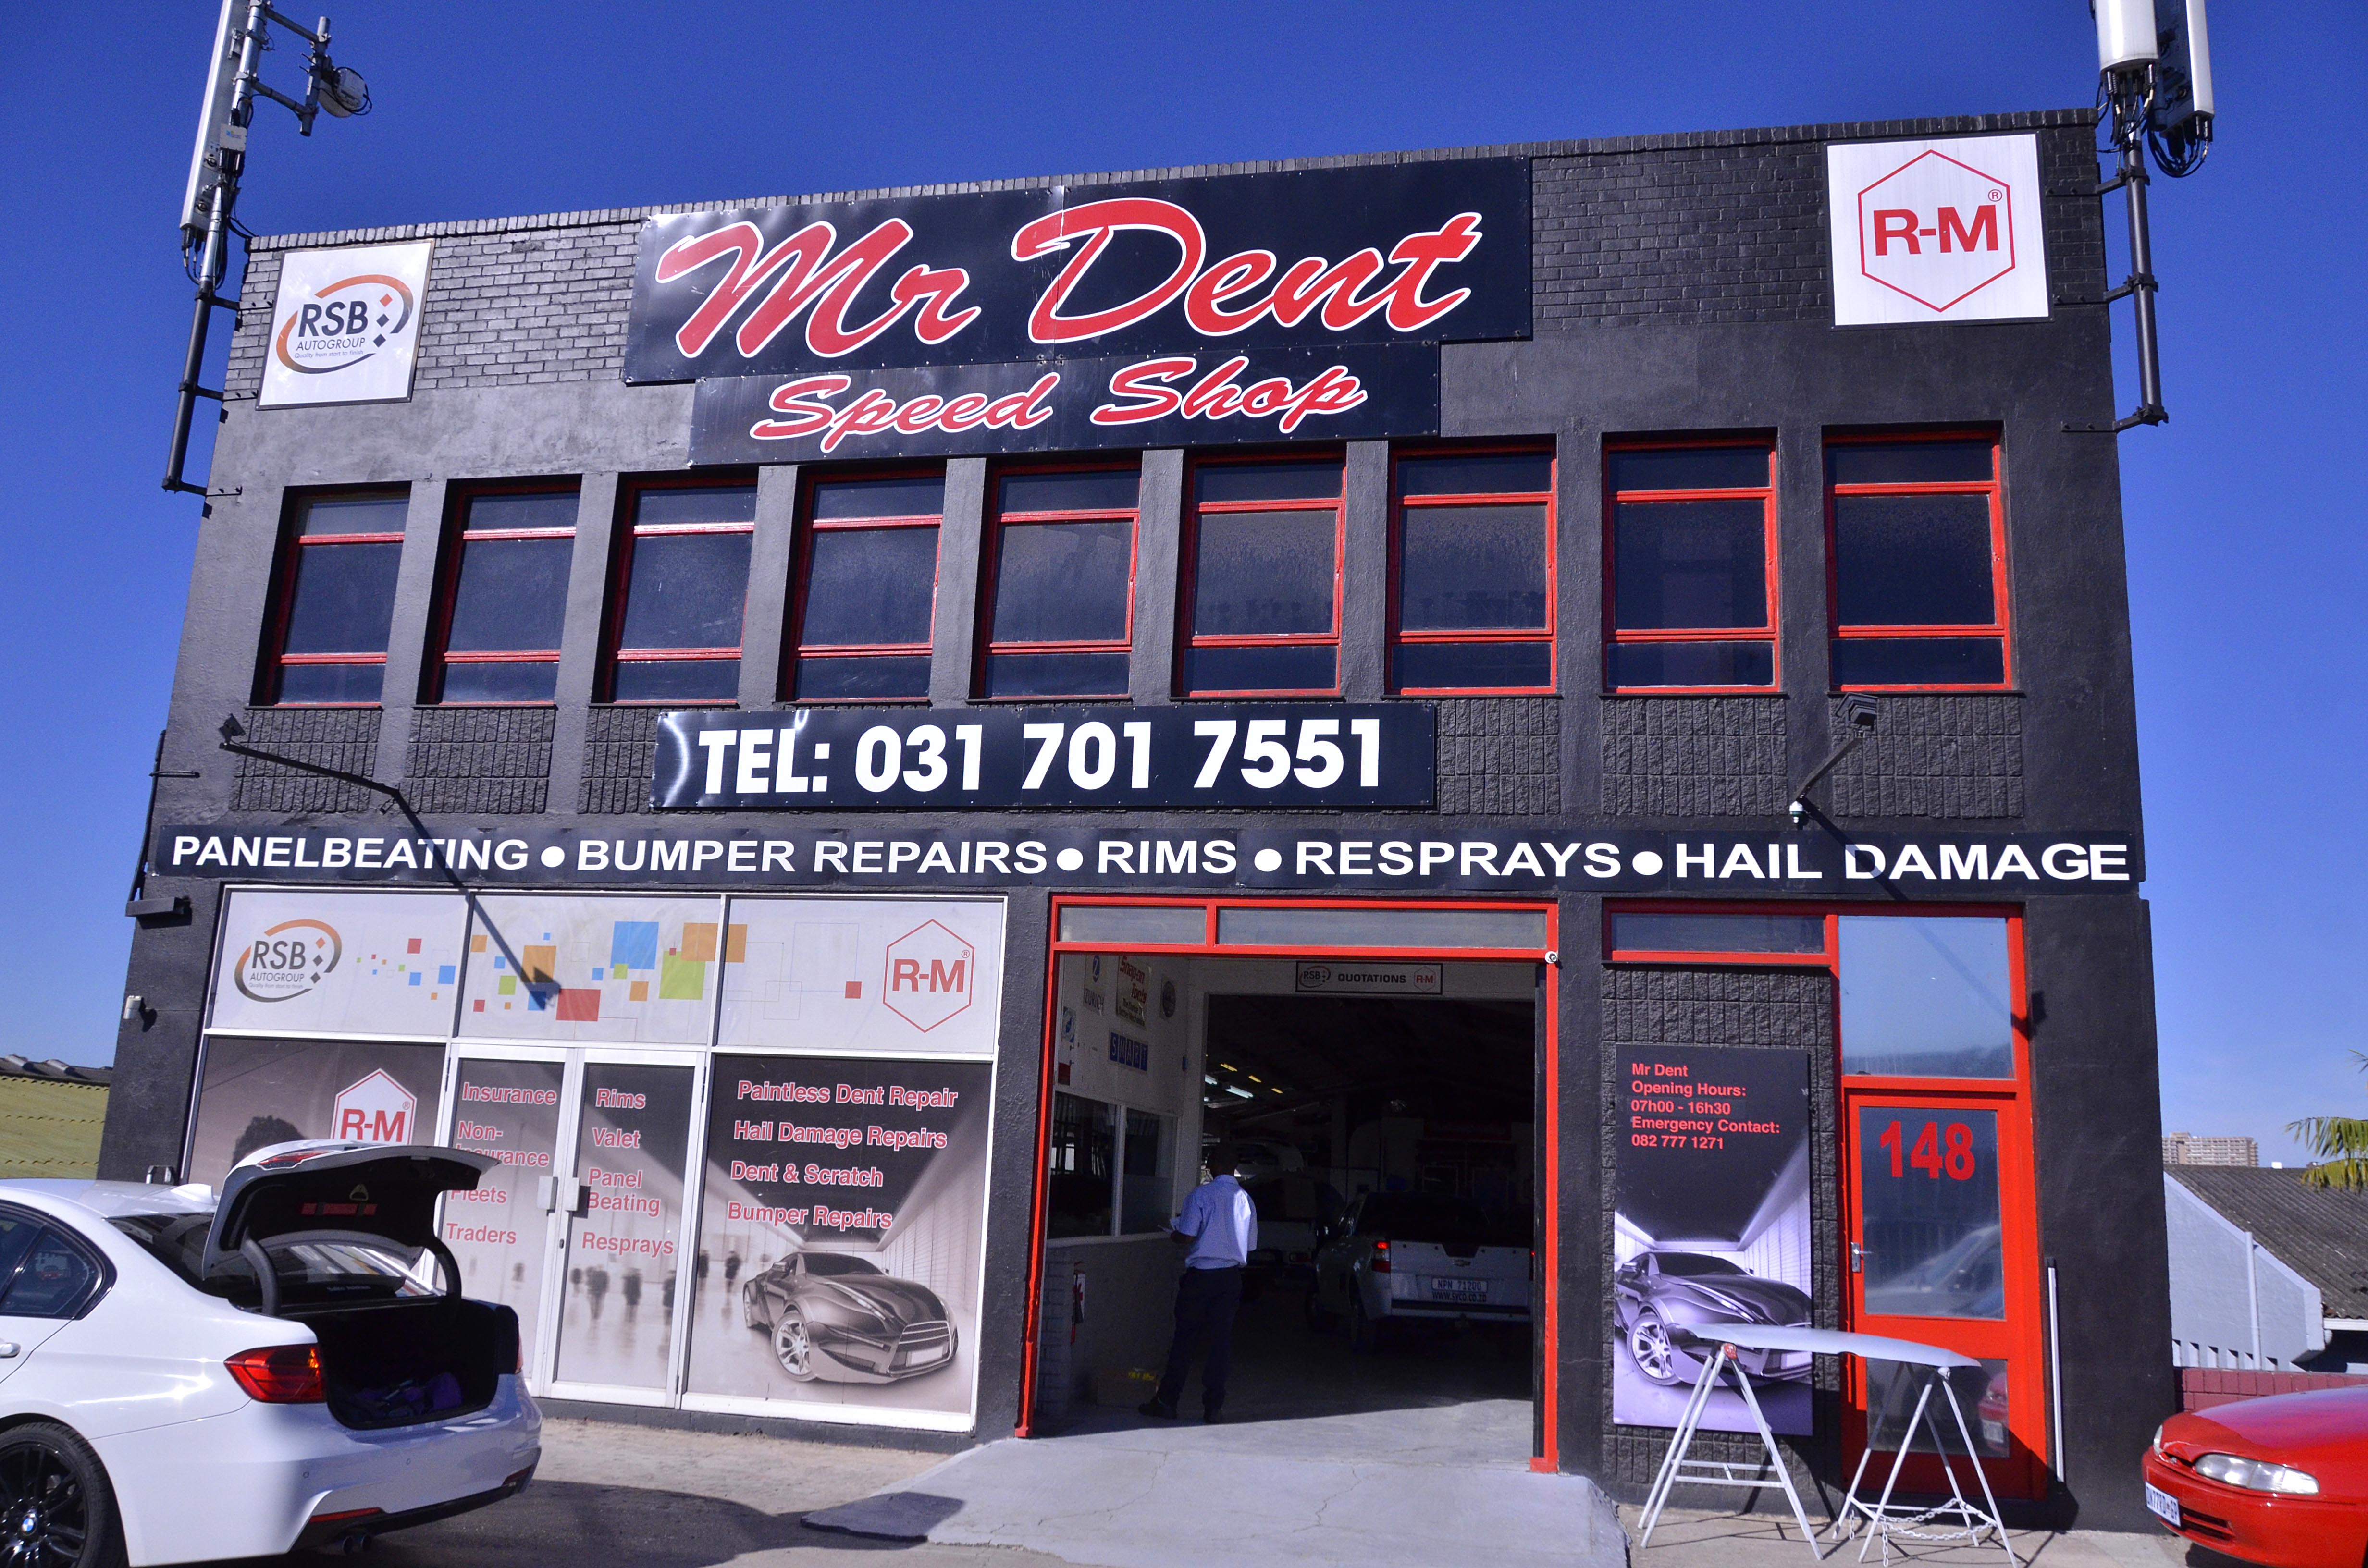 Mr Dent Speed Shop